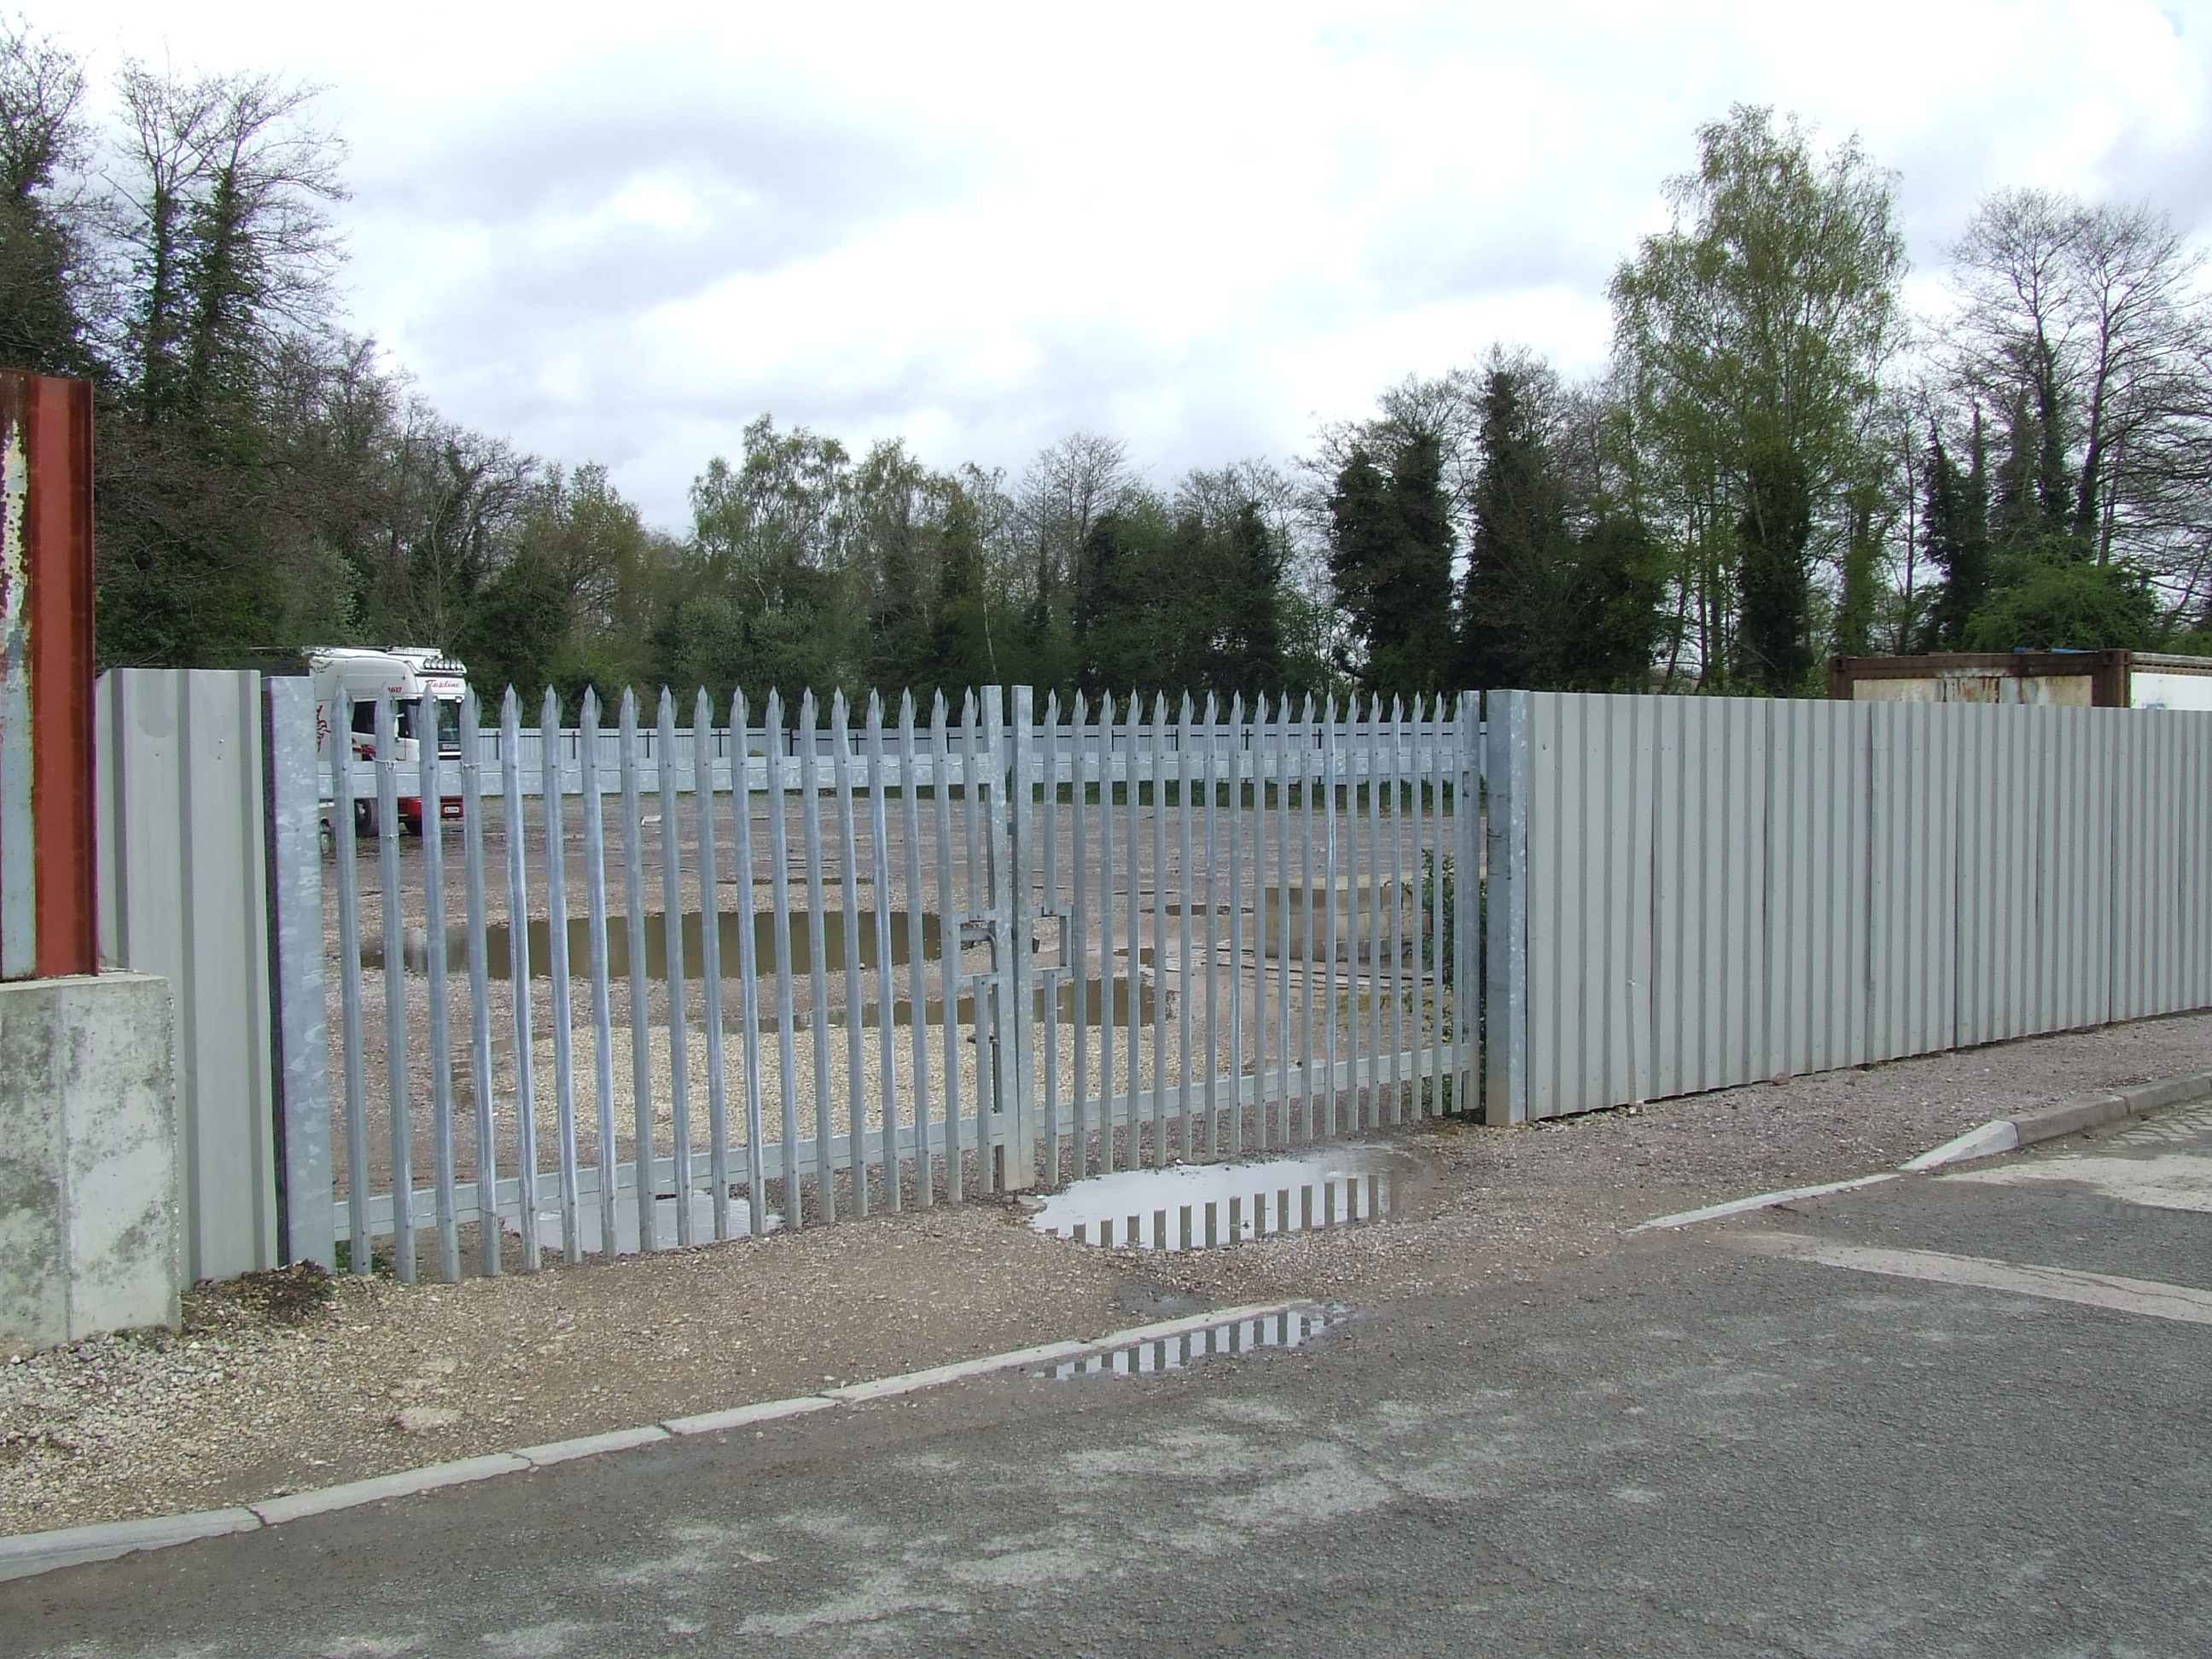 OPEN STORAGE LAND, Riverway Estate, GUILDFORD - LETTING